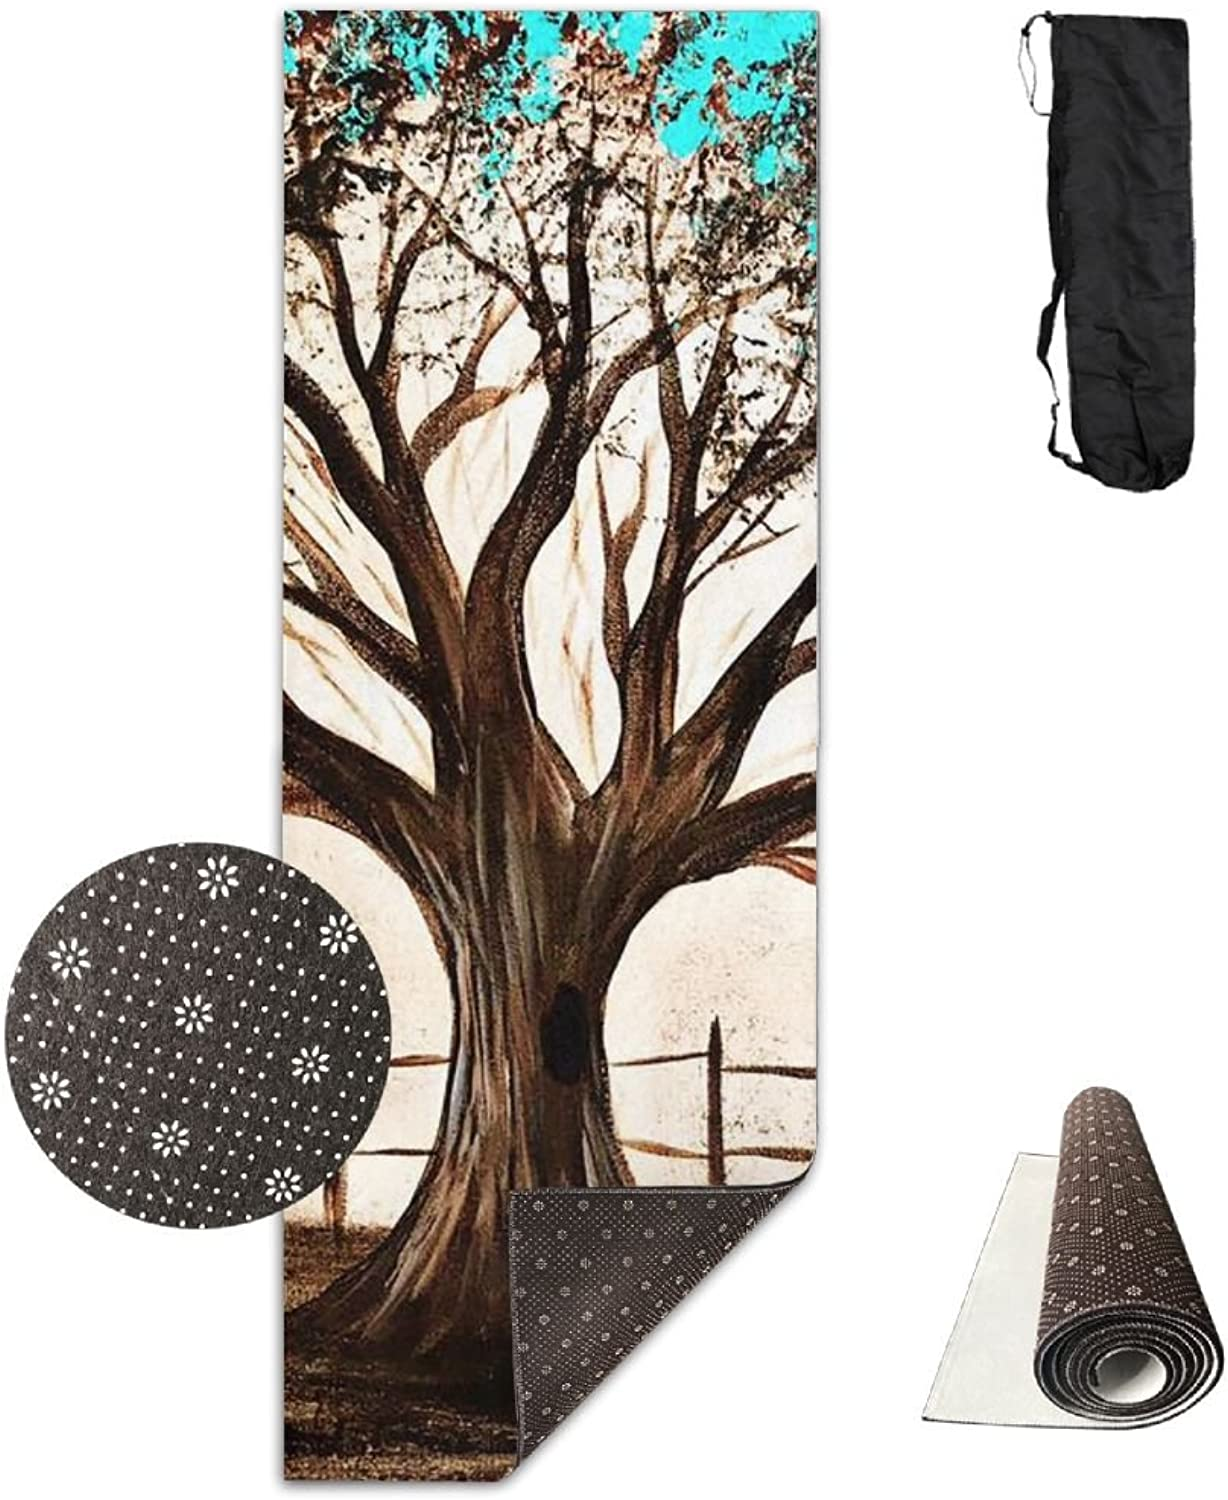 Yoga Mat Non Slip 24  X 71  Exercise Mats Big Tree Painting Premium Fitness Pilates Carrying Strap